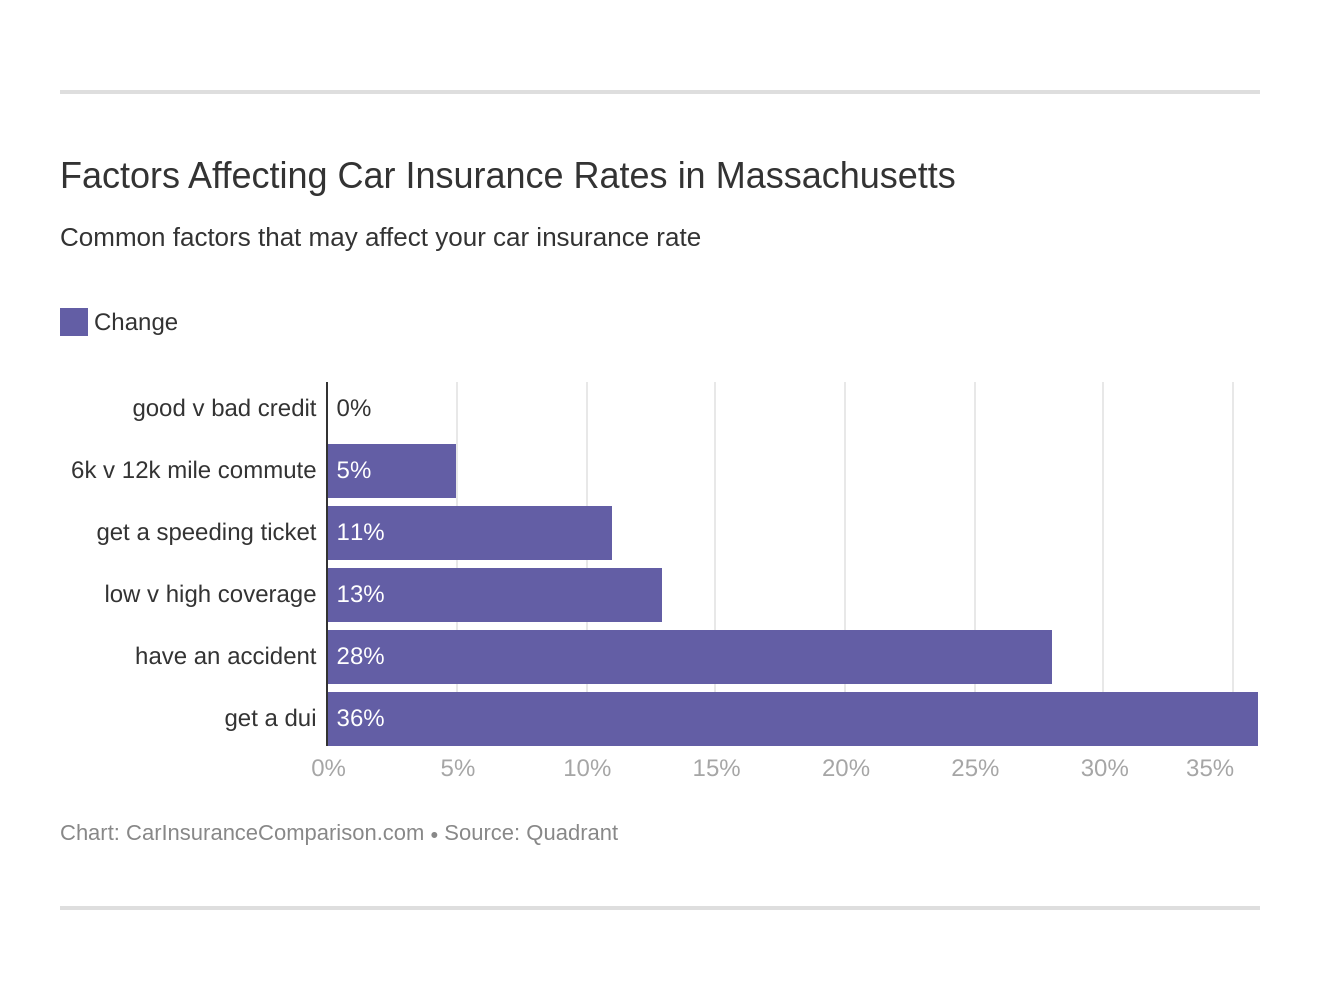 Factors Affecting Car Insurance Rates in Massachusetts